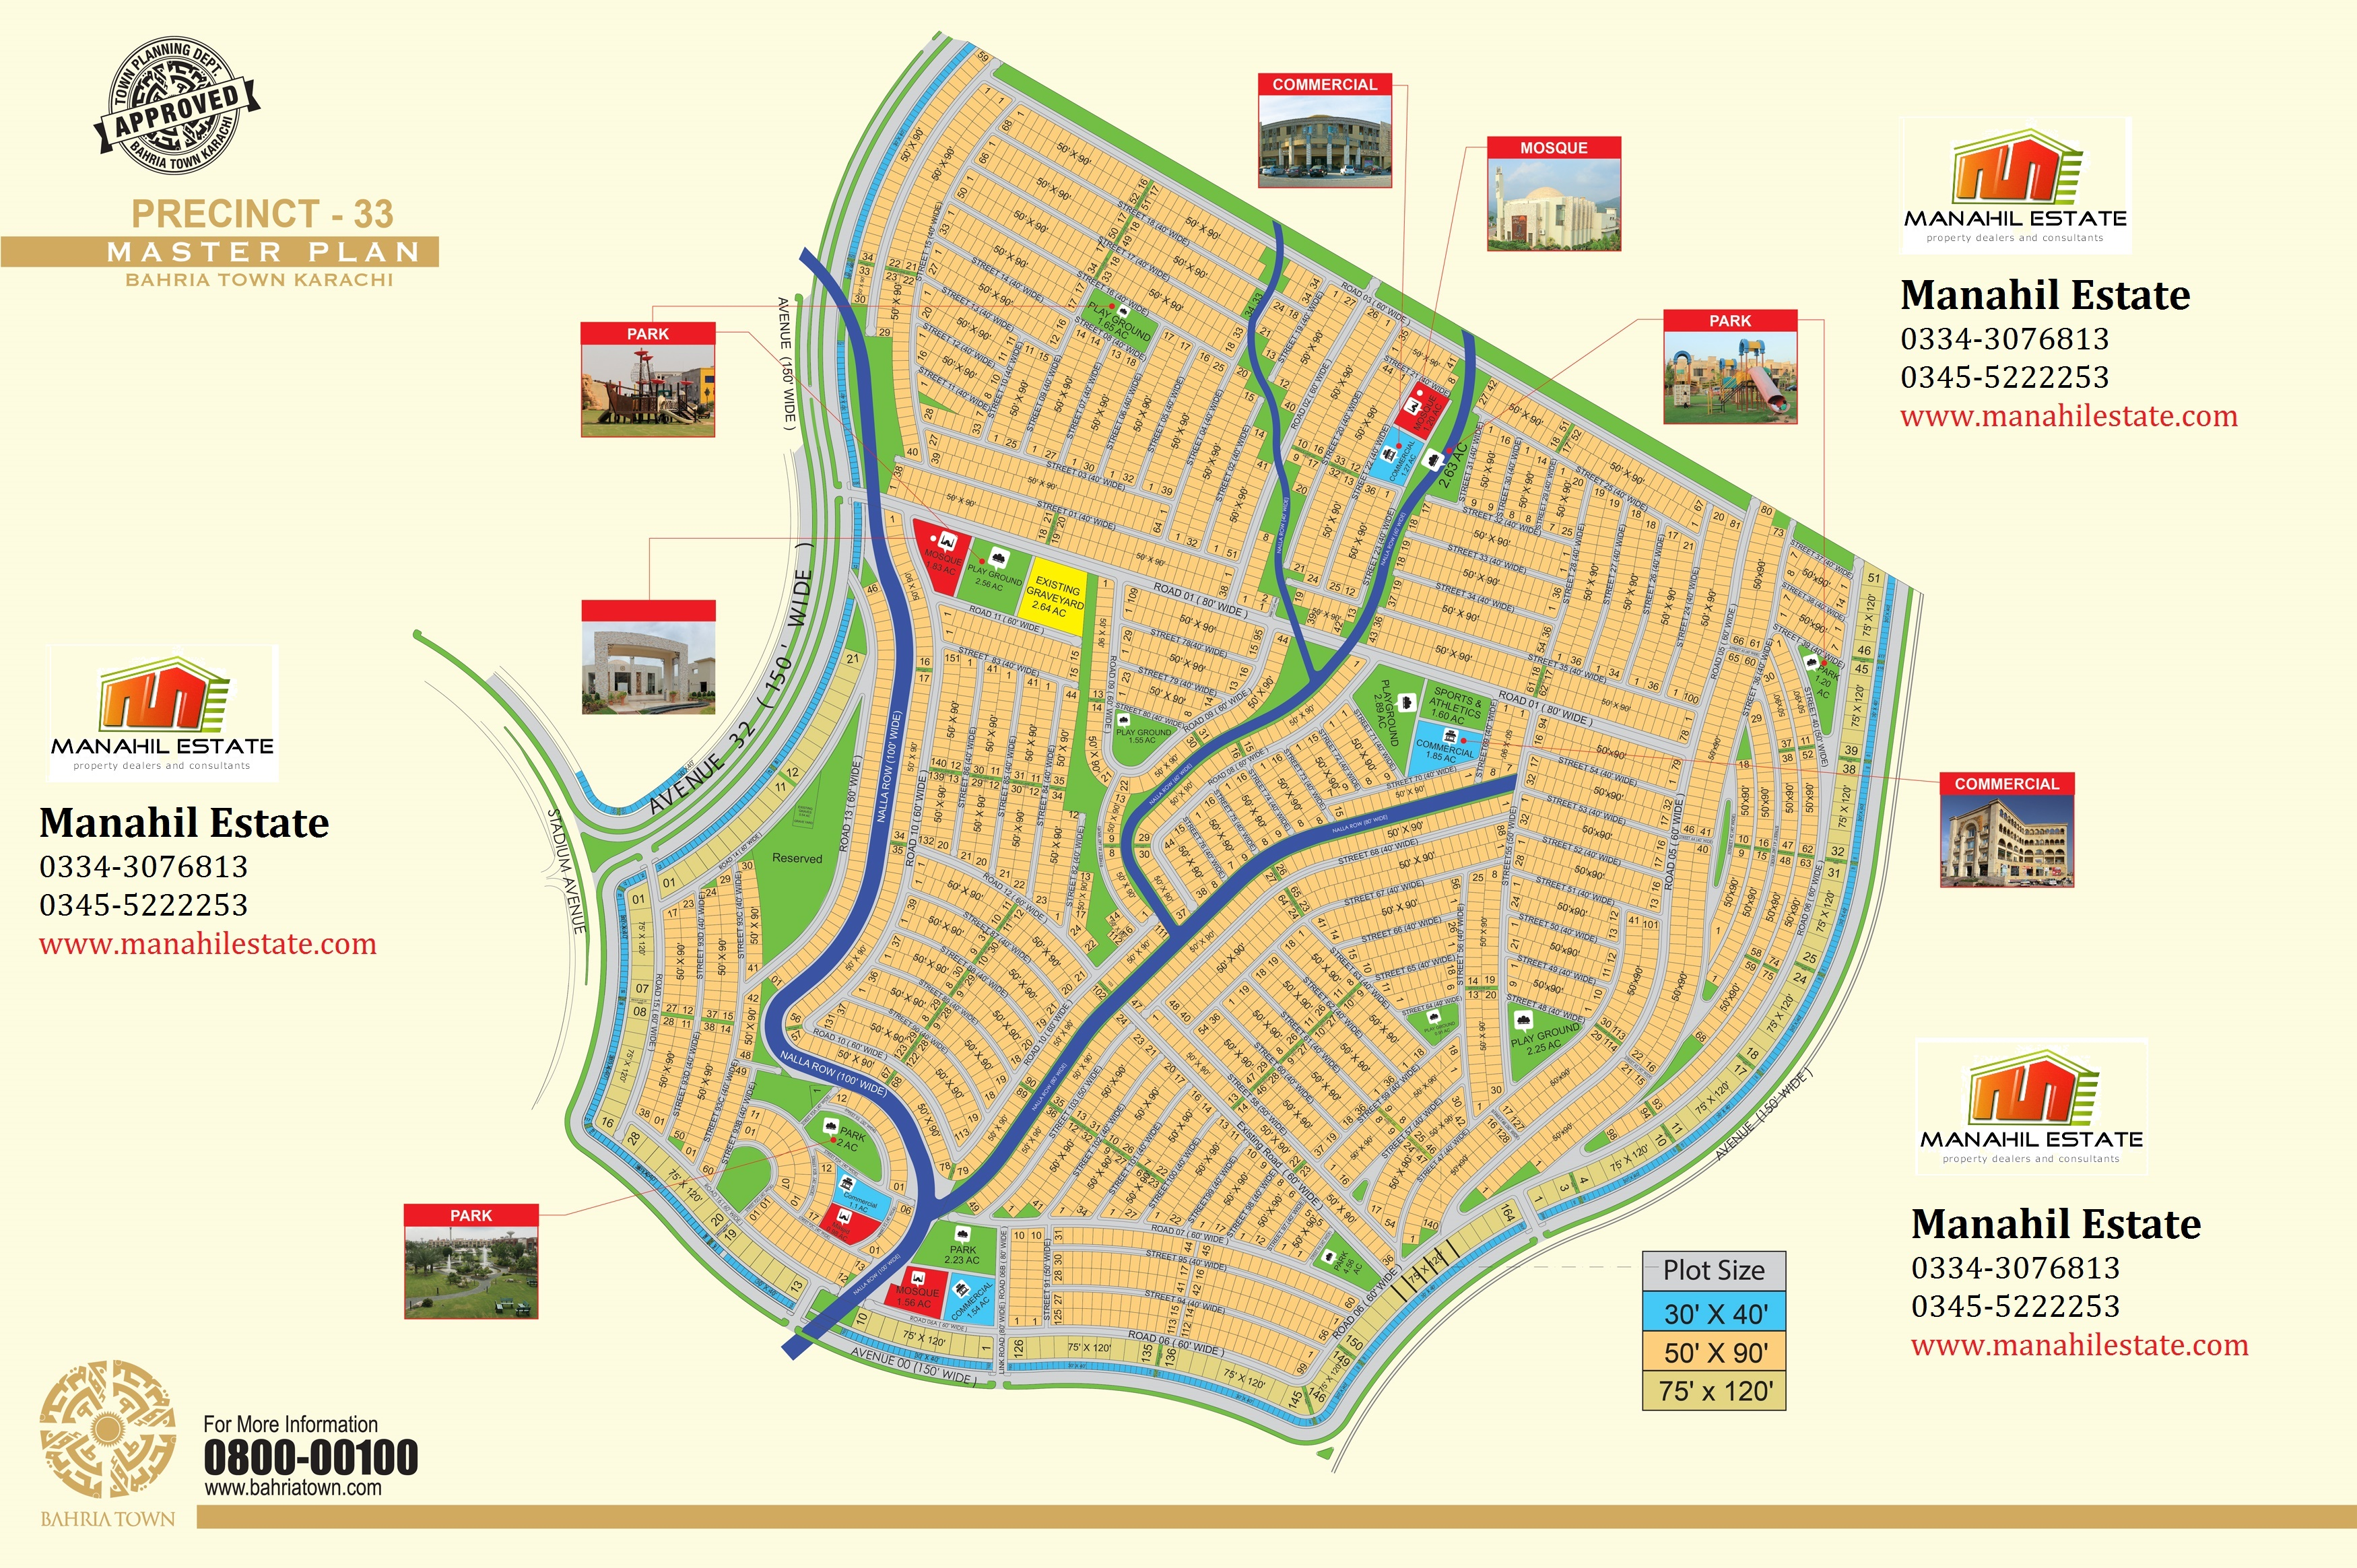 Bahria Town Karachi Revised Master Plan New Precincts Maps - Special report us precinct map